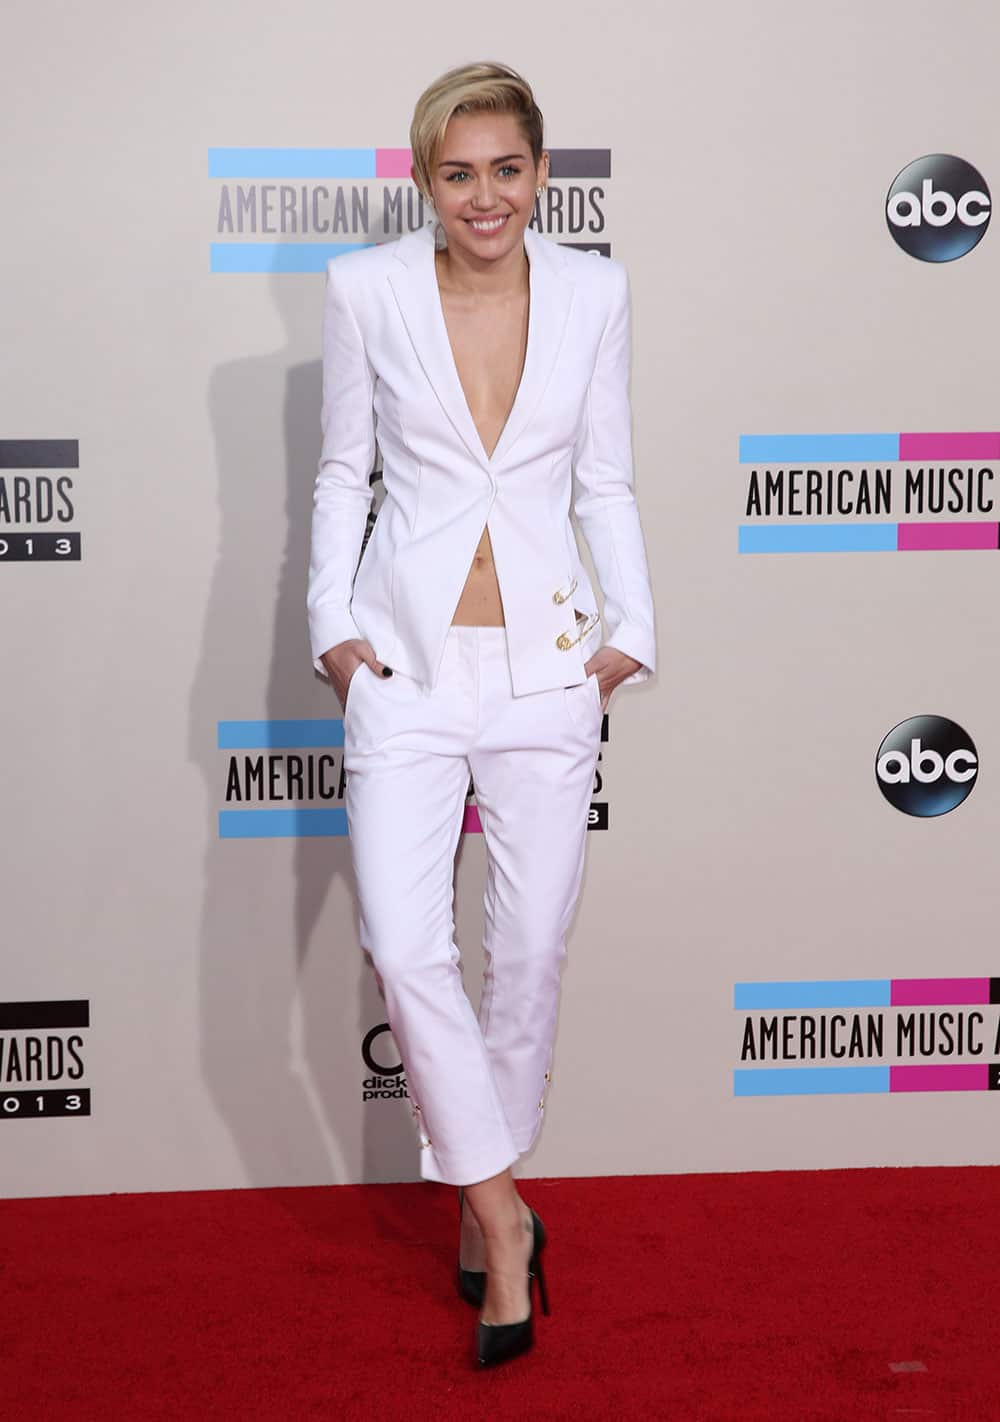 Miley Cyrus arrives at the 2013 American Music Awards.